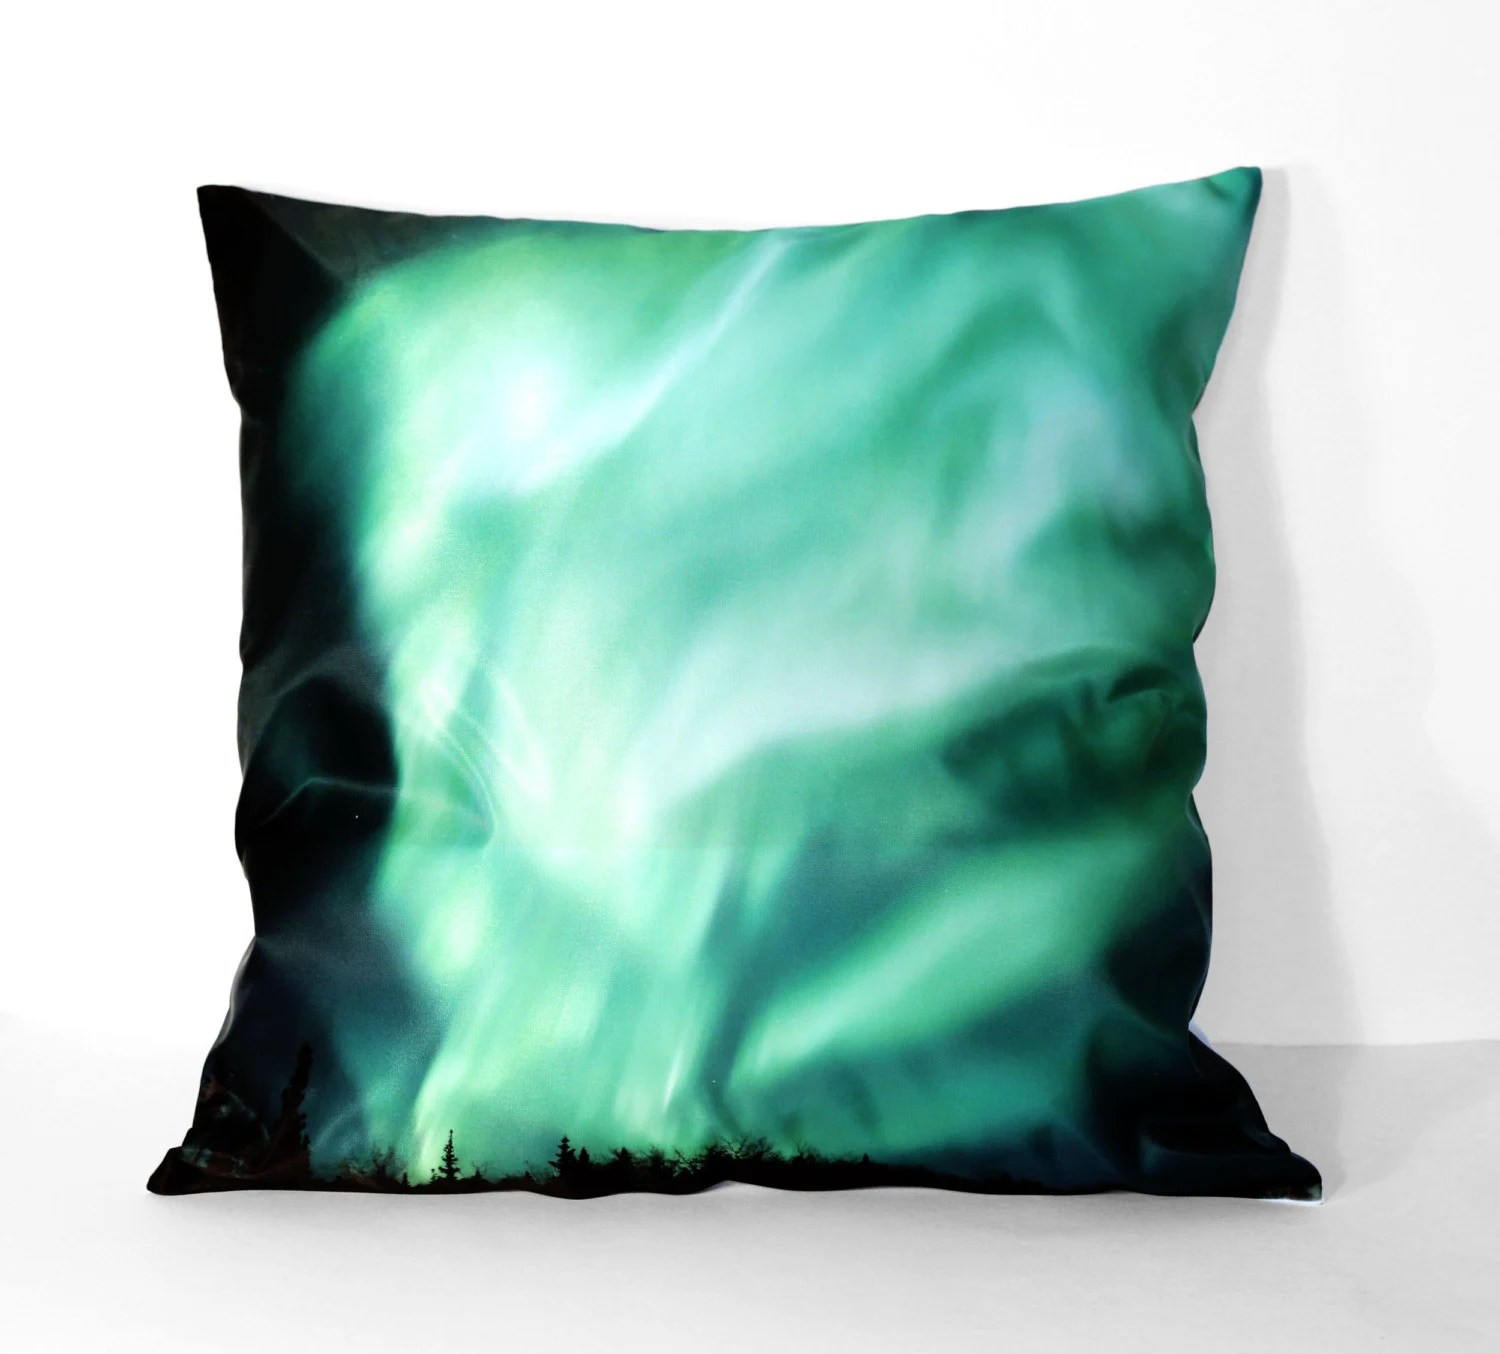 Northern Lights Pillows